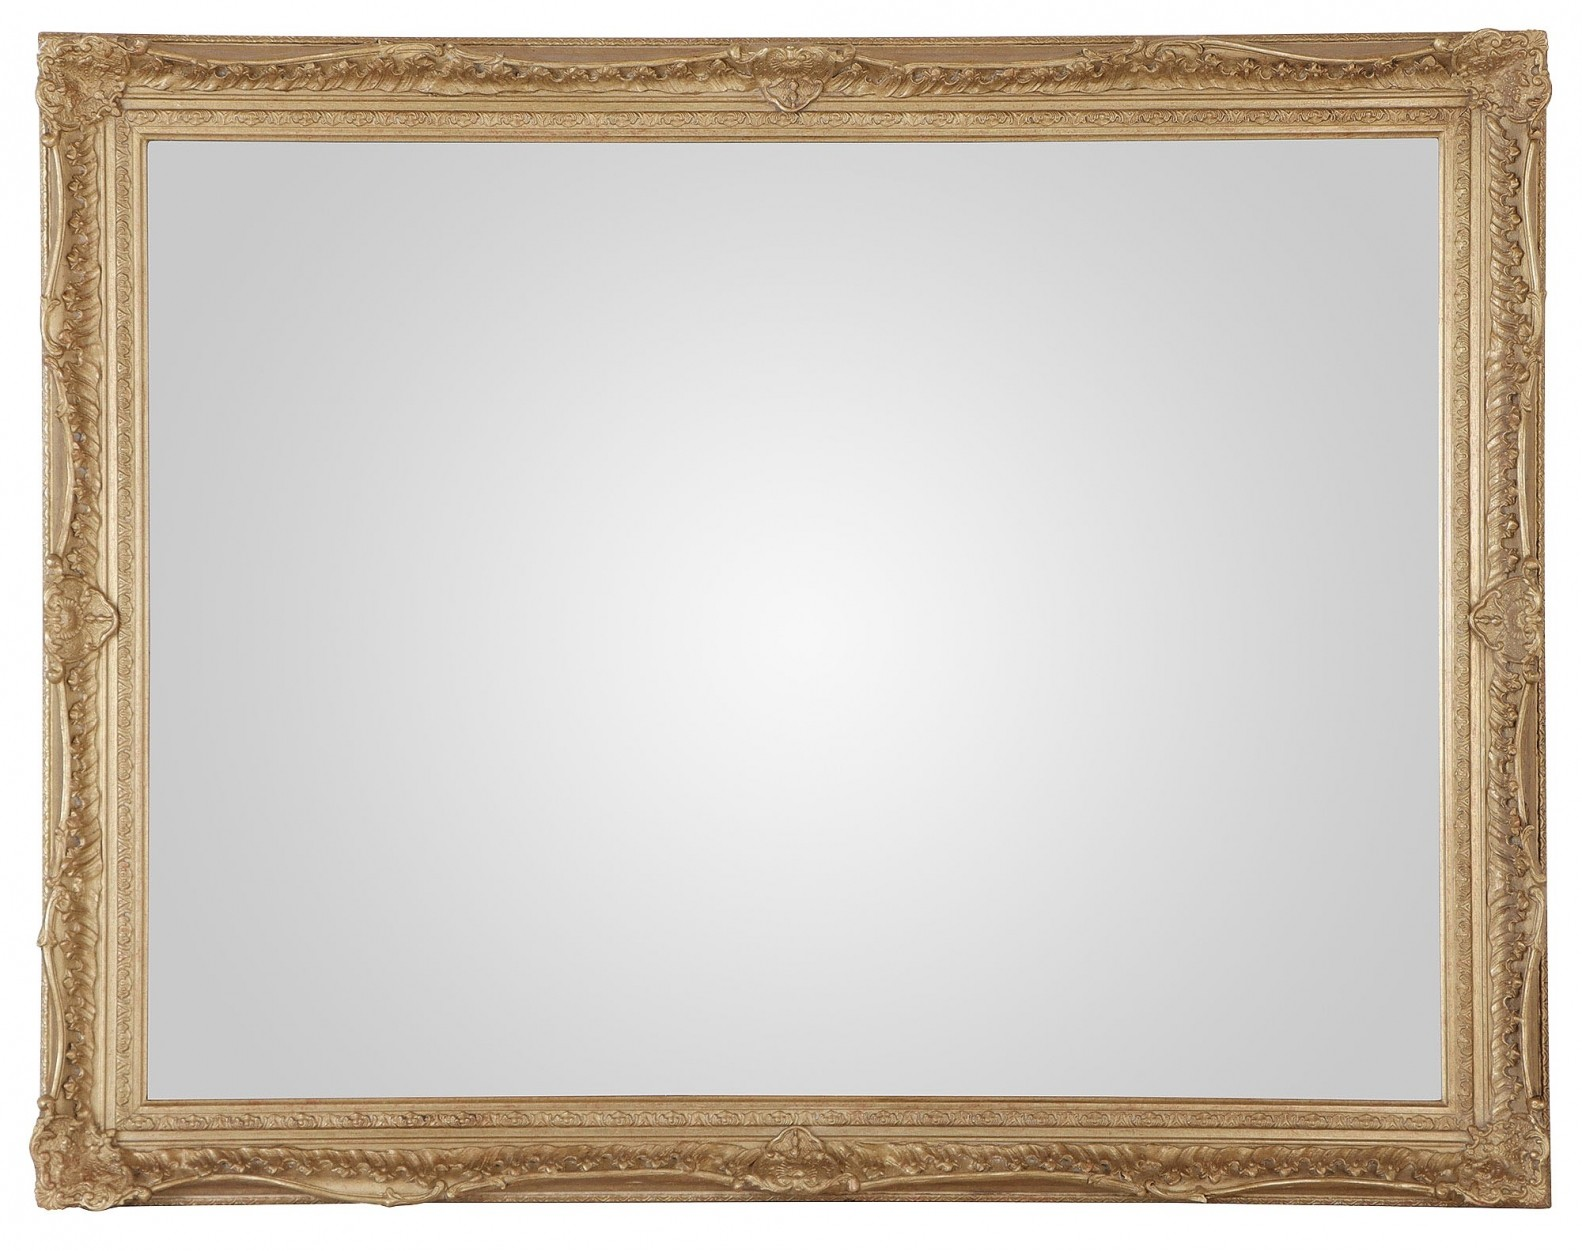 Barbazon hand-made mirror